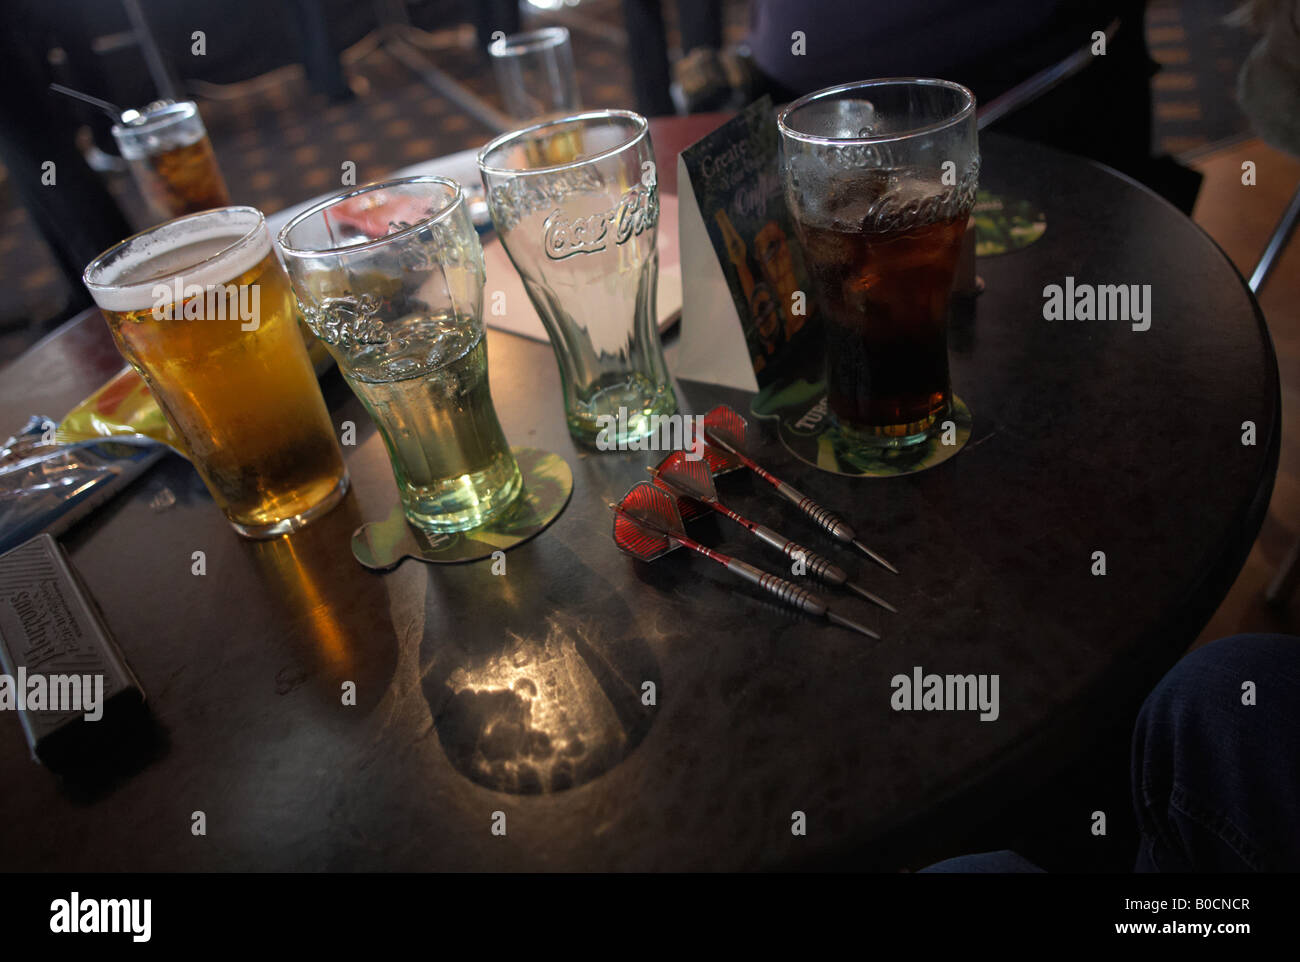 Darts belonging to an English lady player lay on a table with Coke glasses and a pint of lager beer during English - Stock Image